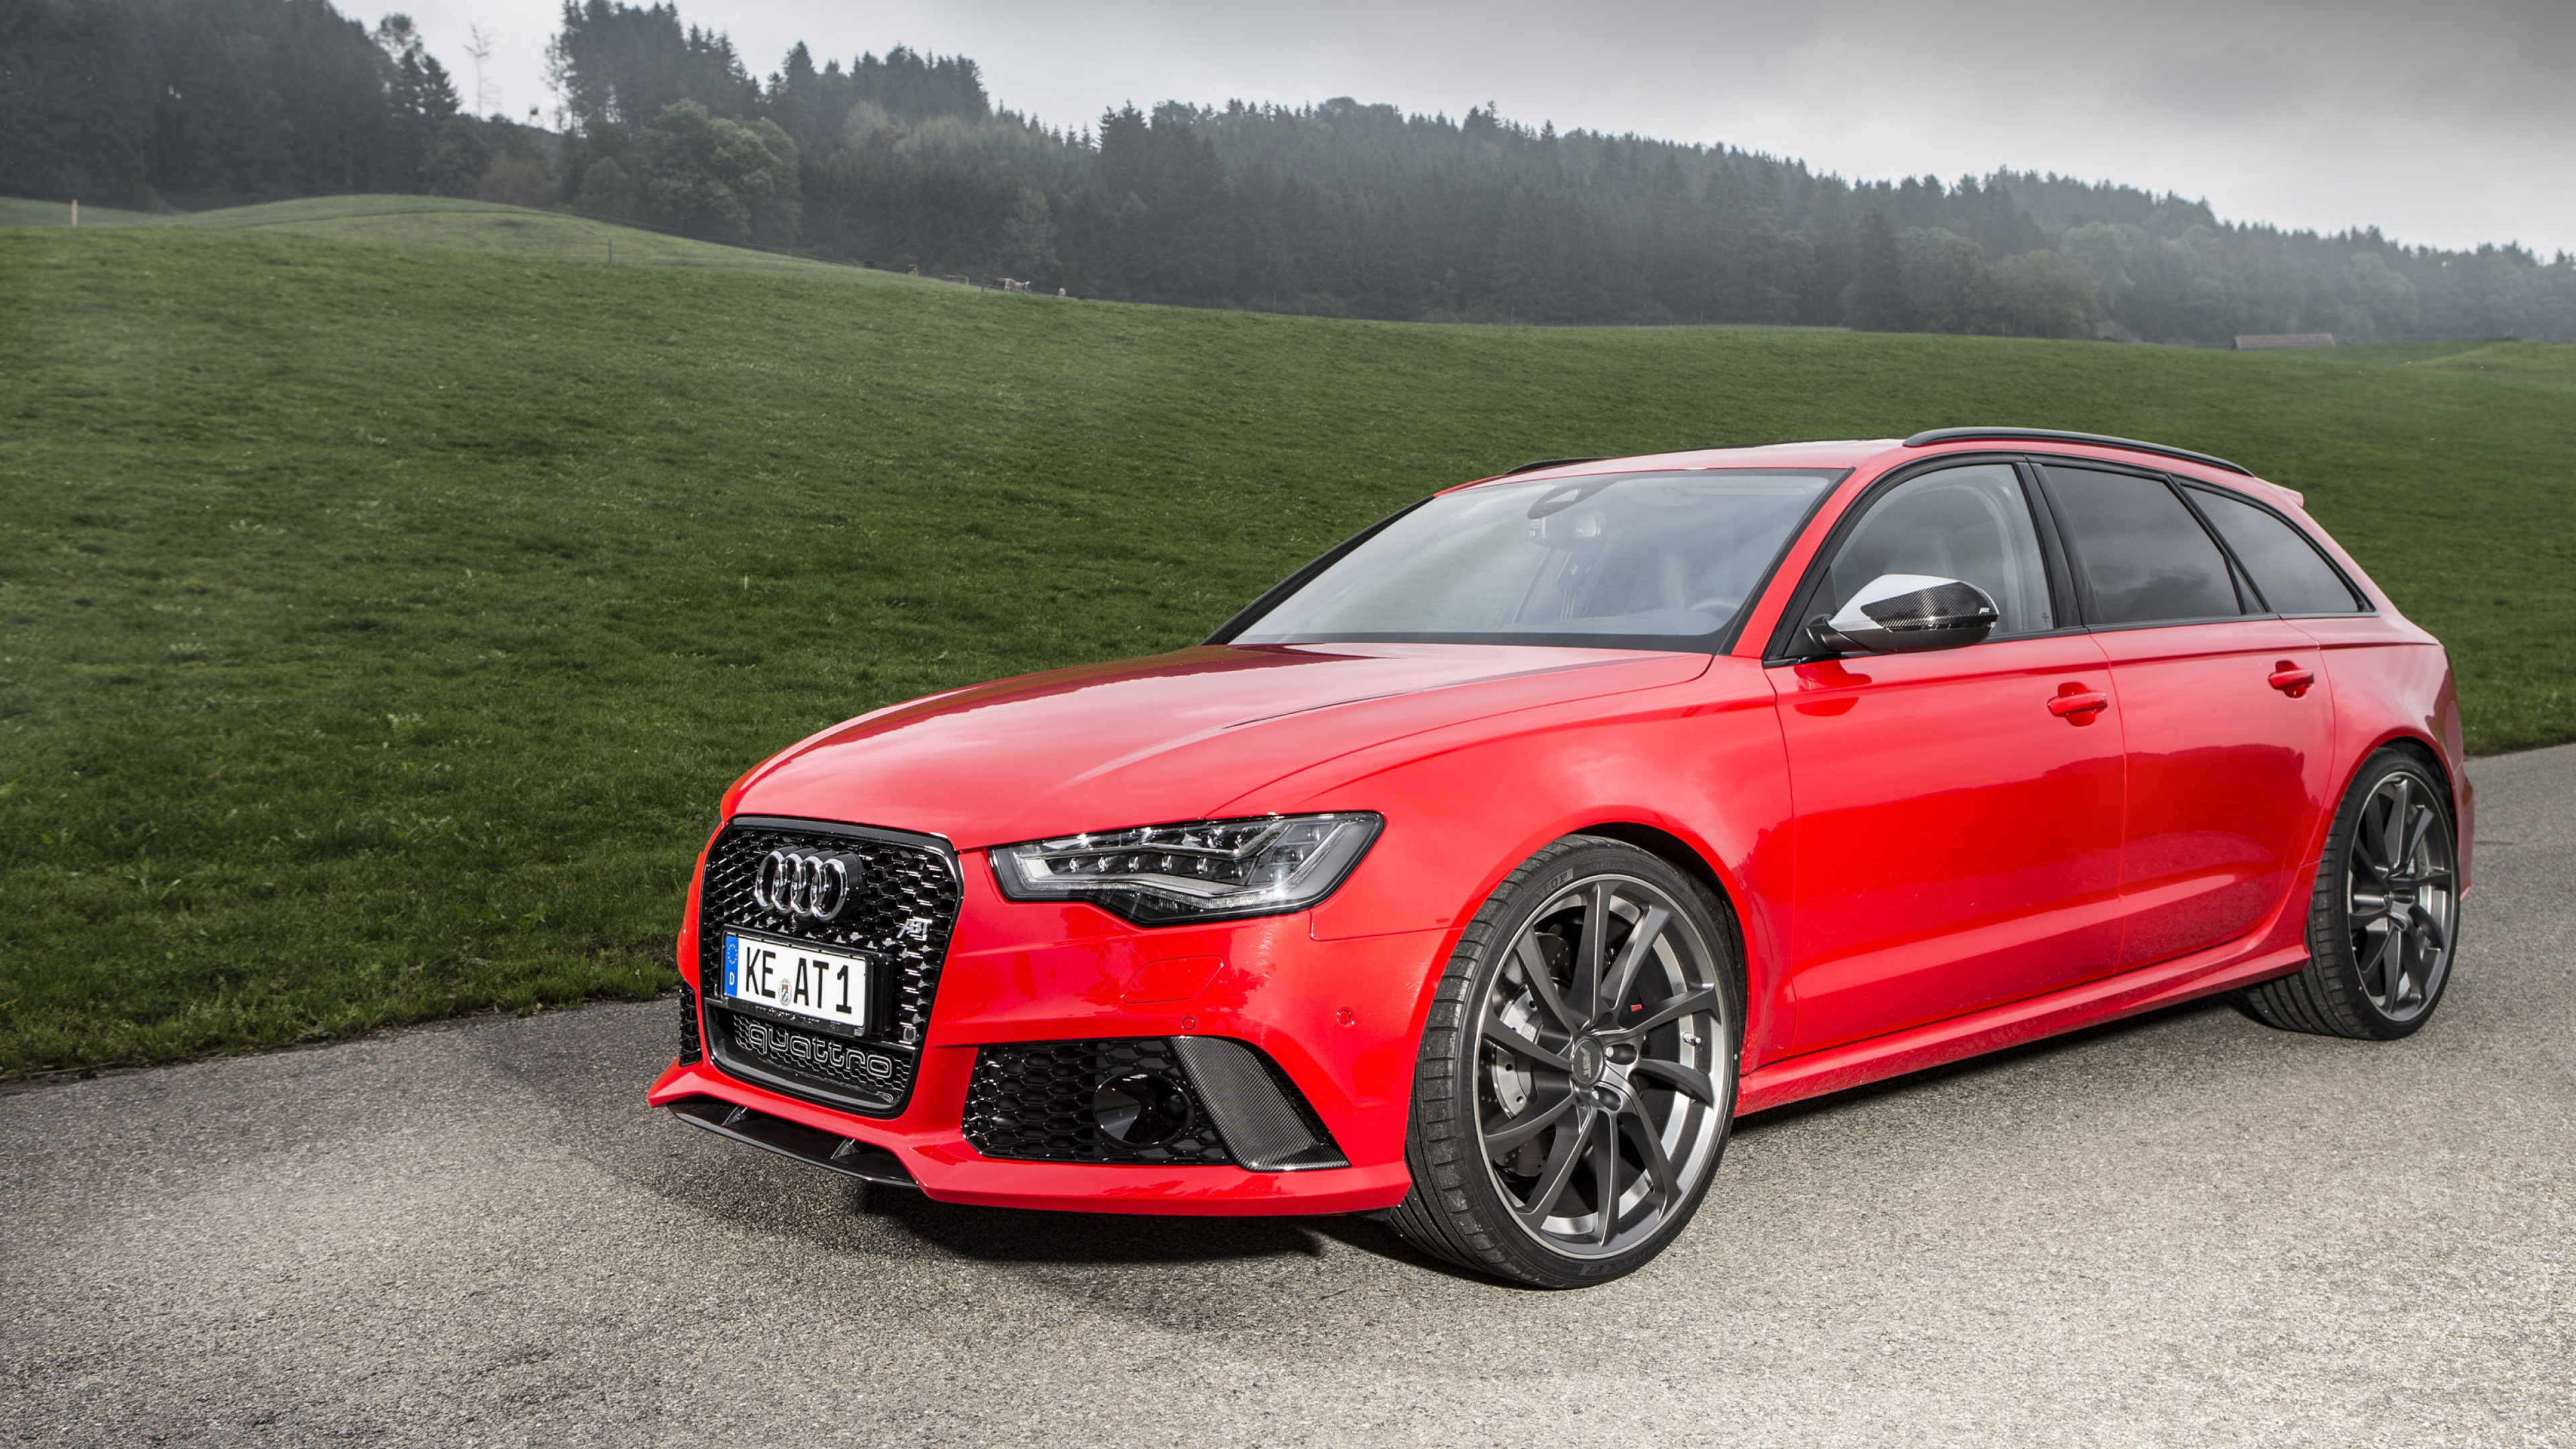 Download Wallpaper 3840x2160 audi rs6 abt wagon 2013 4K Ultra HD 3840x2160